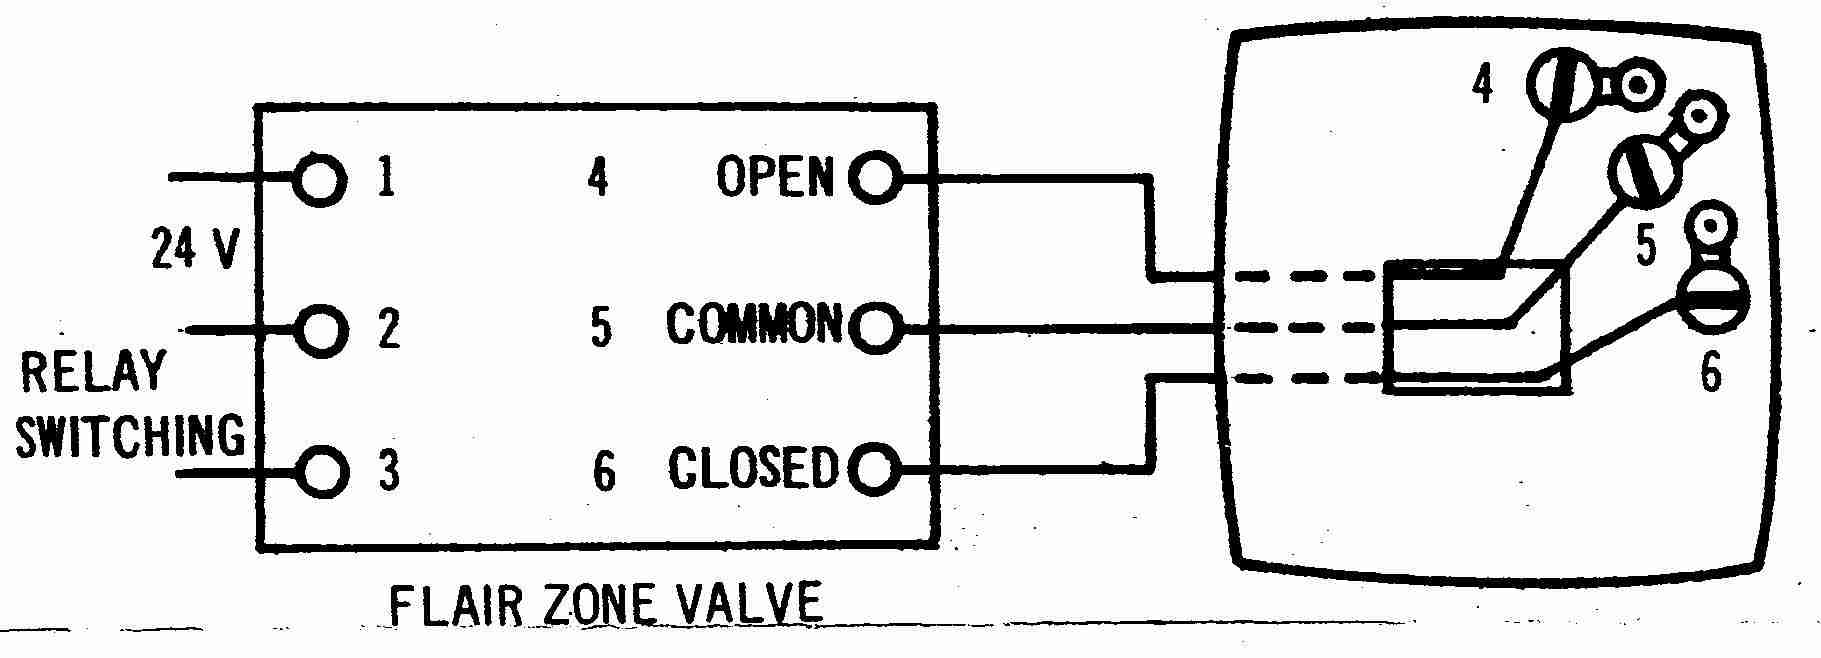 Flair3w_001_DJFc2 room thermostat wiring diagrams for hvac systems 2 wire thermostat wiring diagram at fashall.co